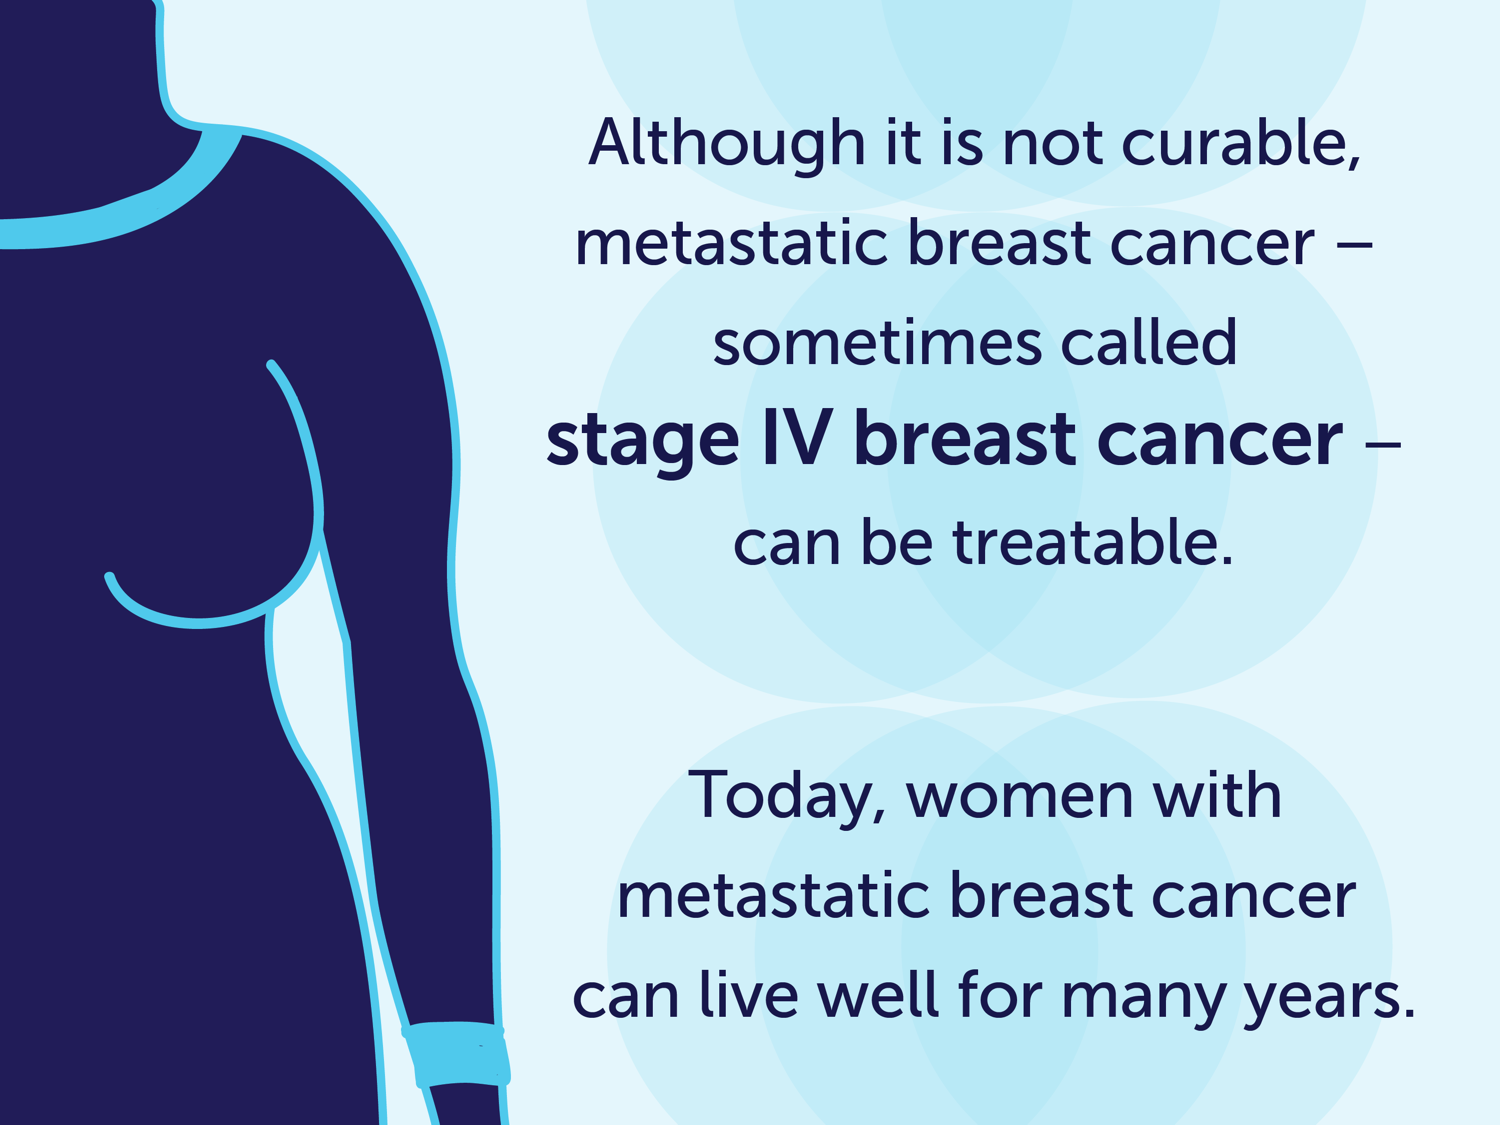 Although it is not curable, metastatic breast cancer — sometimes called stage IV breast cancer — can be treatable. Today, women with metastatic breast cancer can live well for many years.